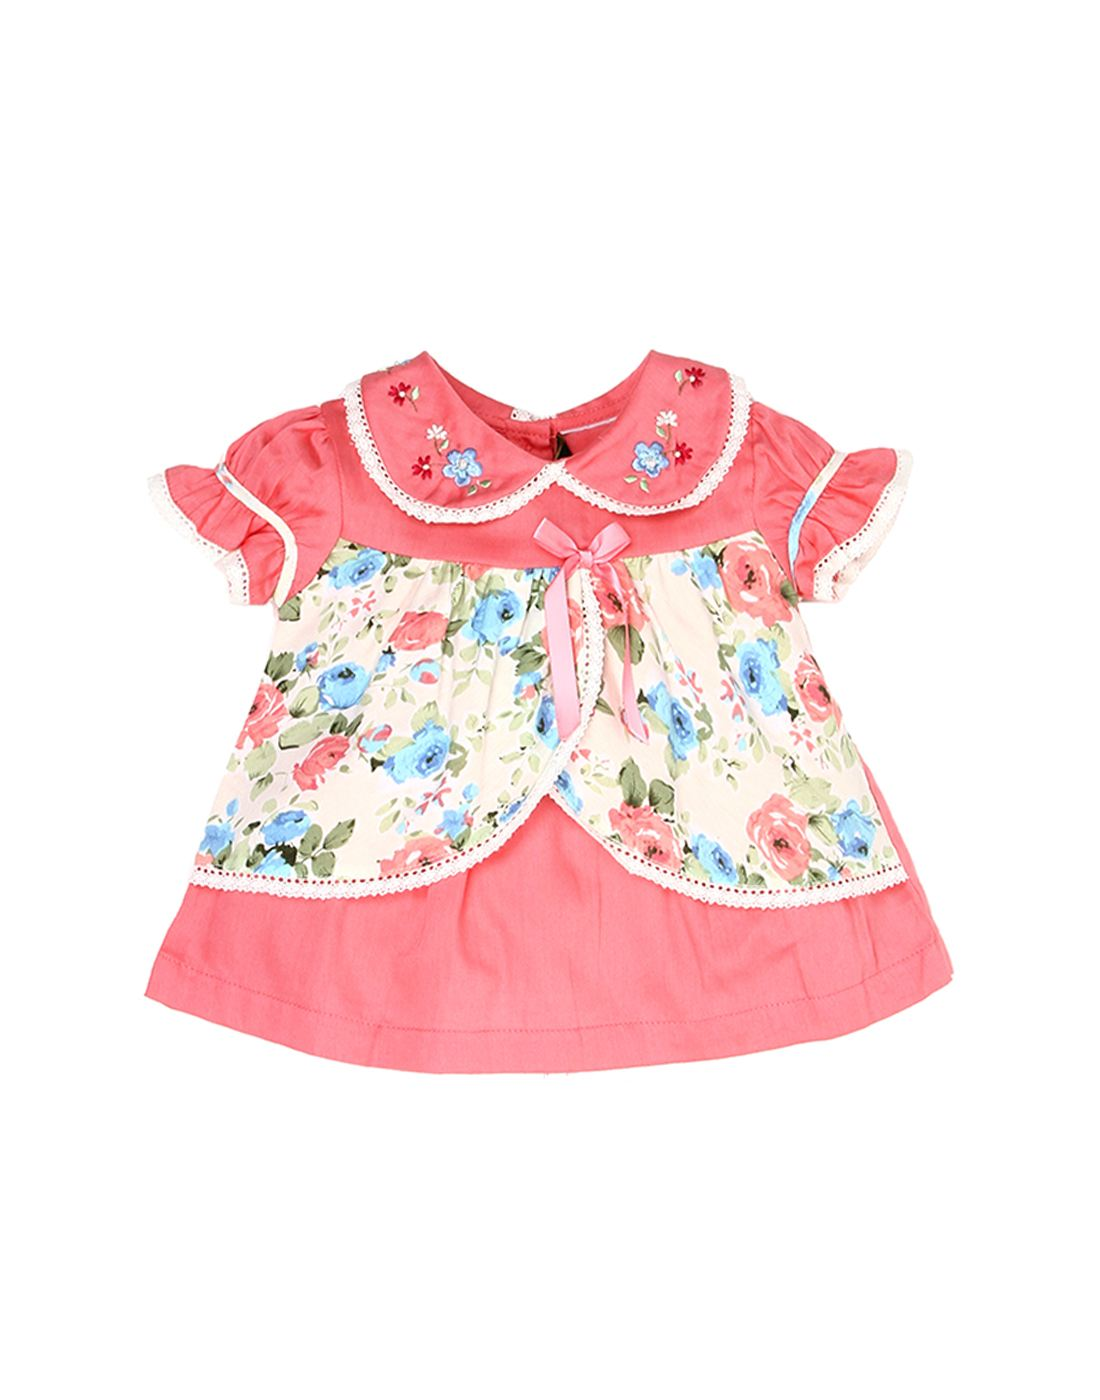 K.C.O 89 Baby Girls Casual Floral Print Half Sleeve Dress